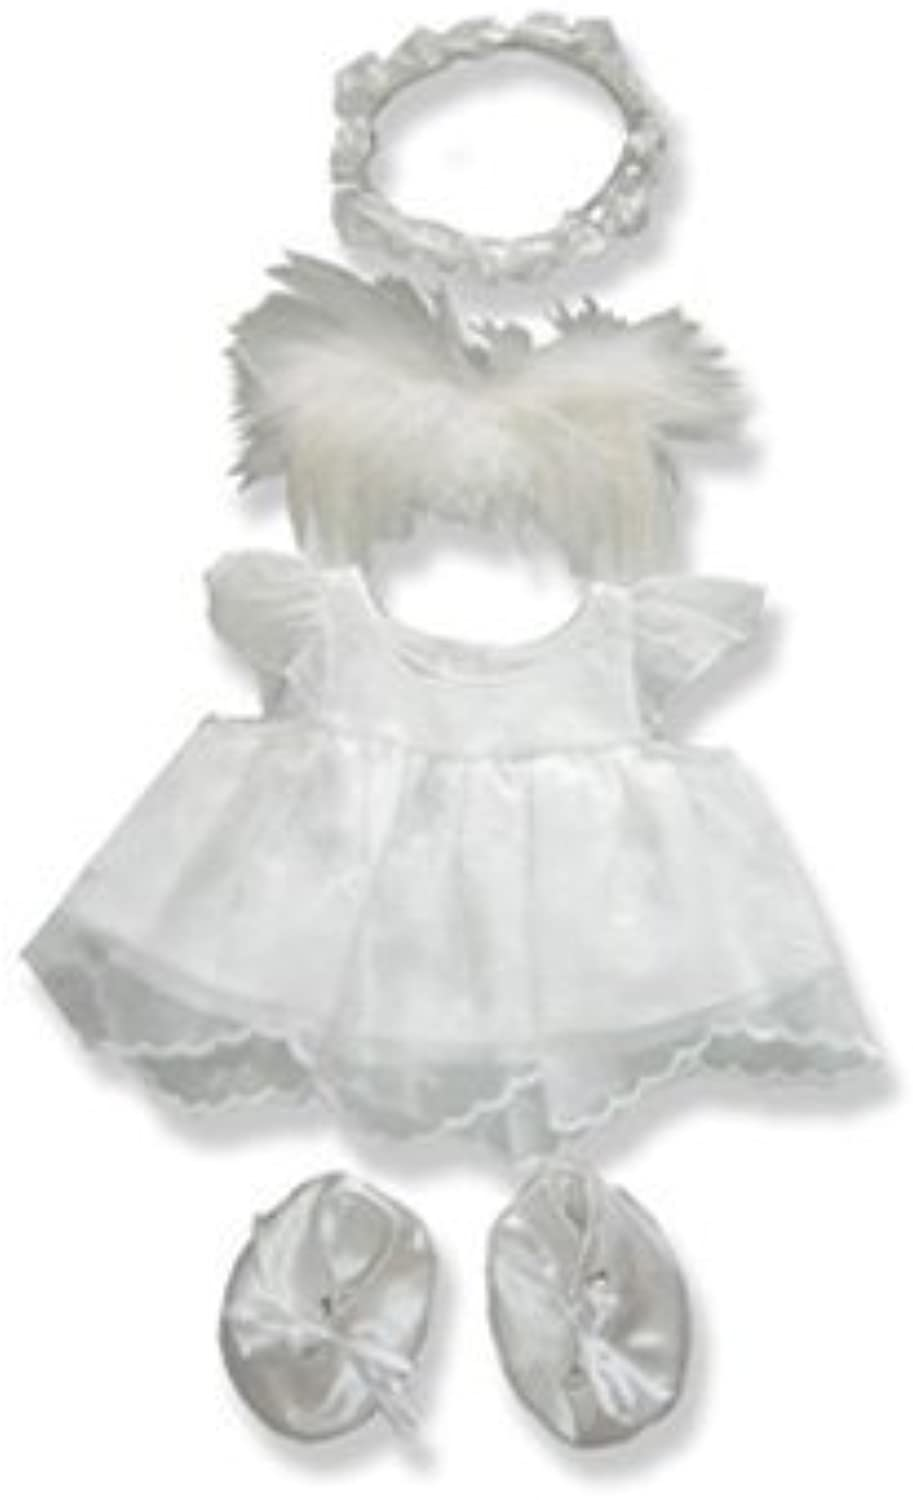 el mas reciente Angel Outfit Teddy Teddy Teddy Bear Clothes Fit 14 - 18 Build-a-bear, Vermont Teddy Bears, and Make Your Own Stuffed Animals by Stuffems Juguete Shop  encuentra tu favorito aquí